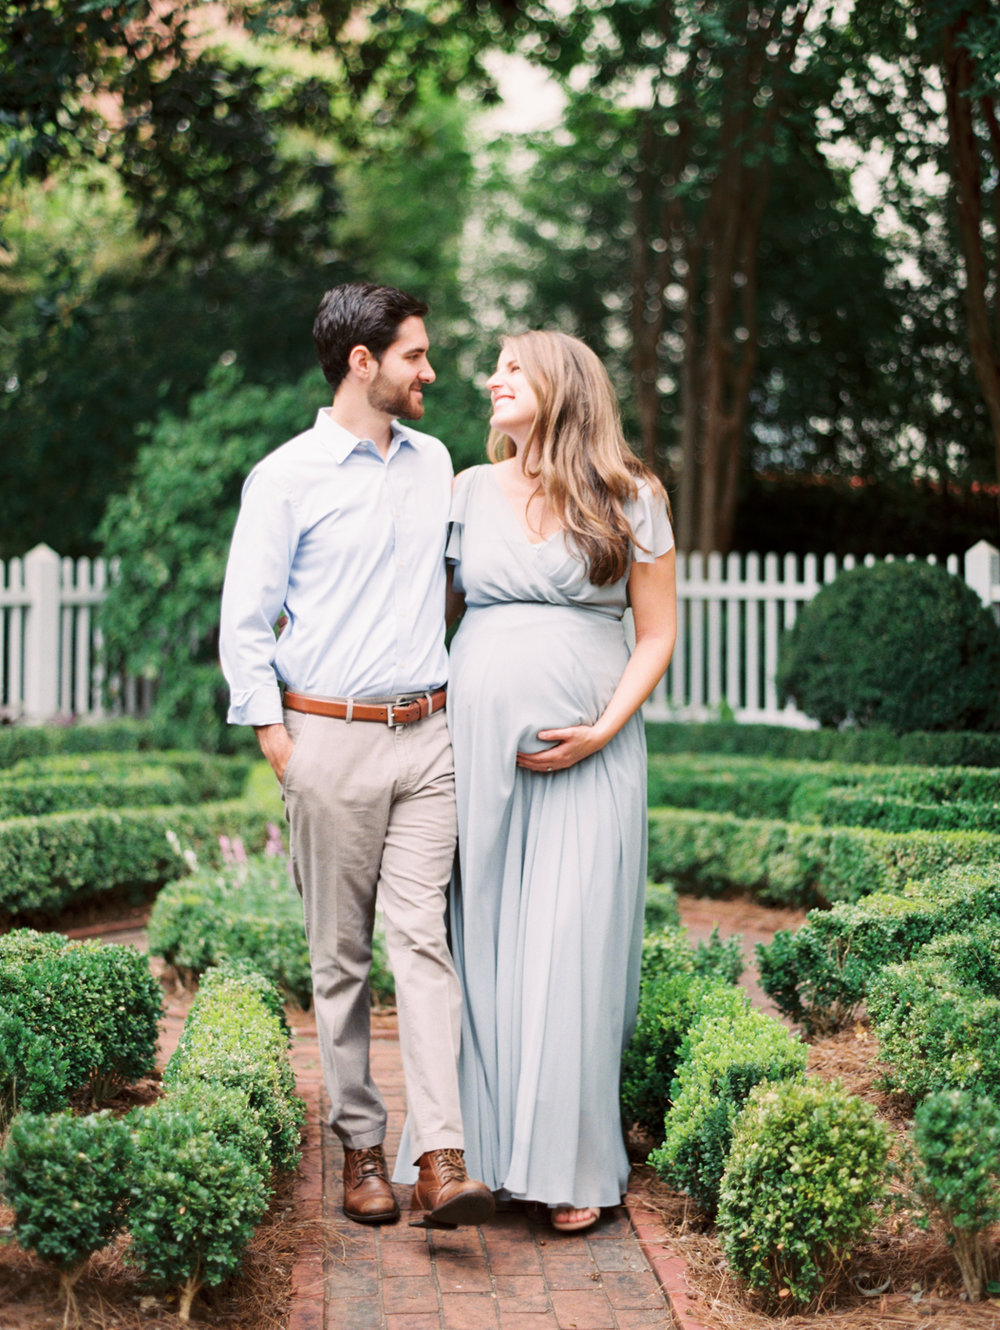 shackleford maternity four corners photography athens maternity photographer anna shackleford photography atlanta film photographer maternity photography-19.jpg